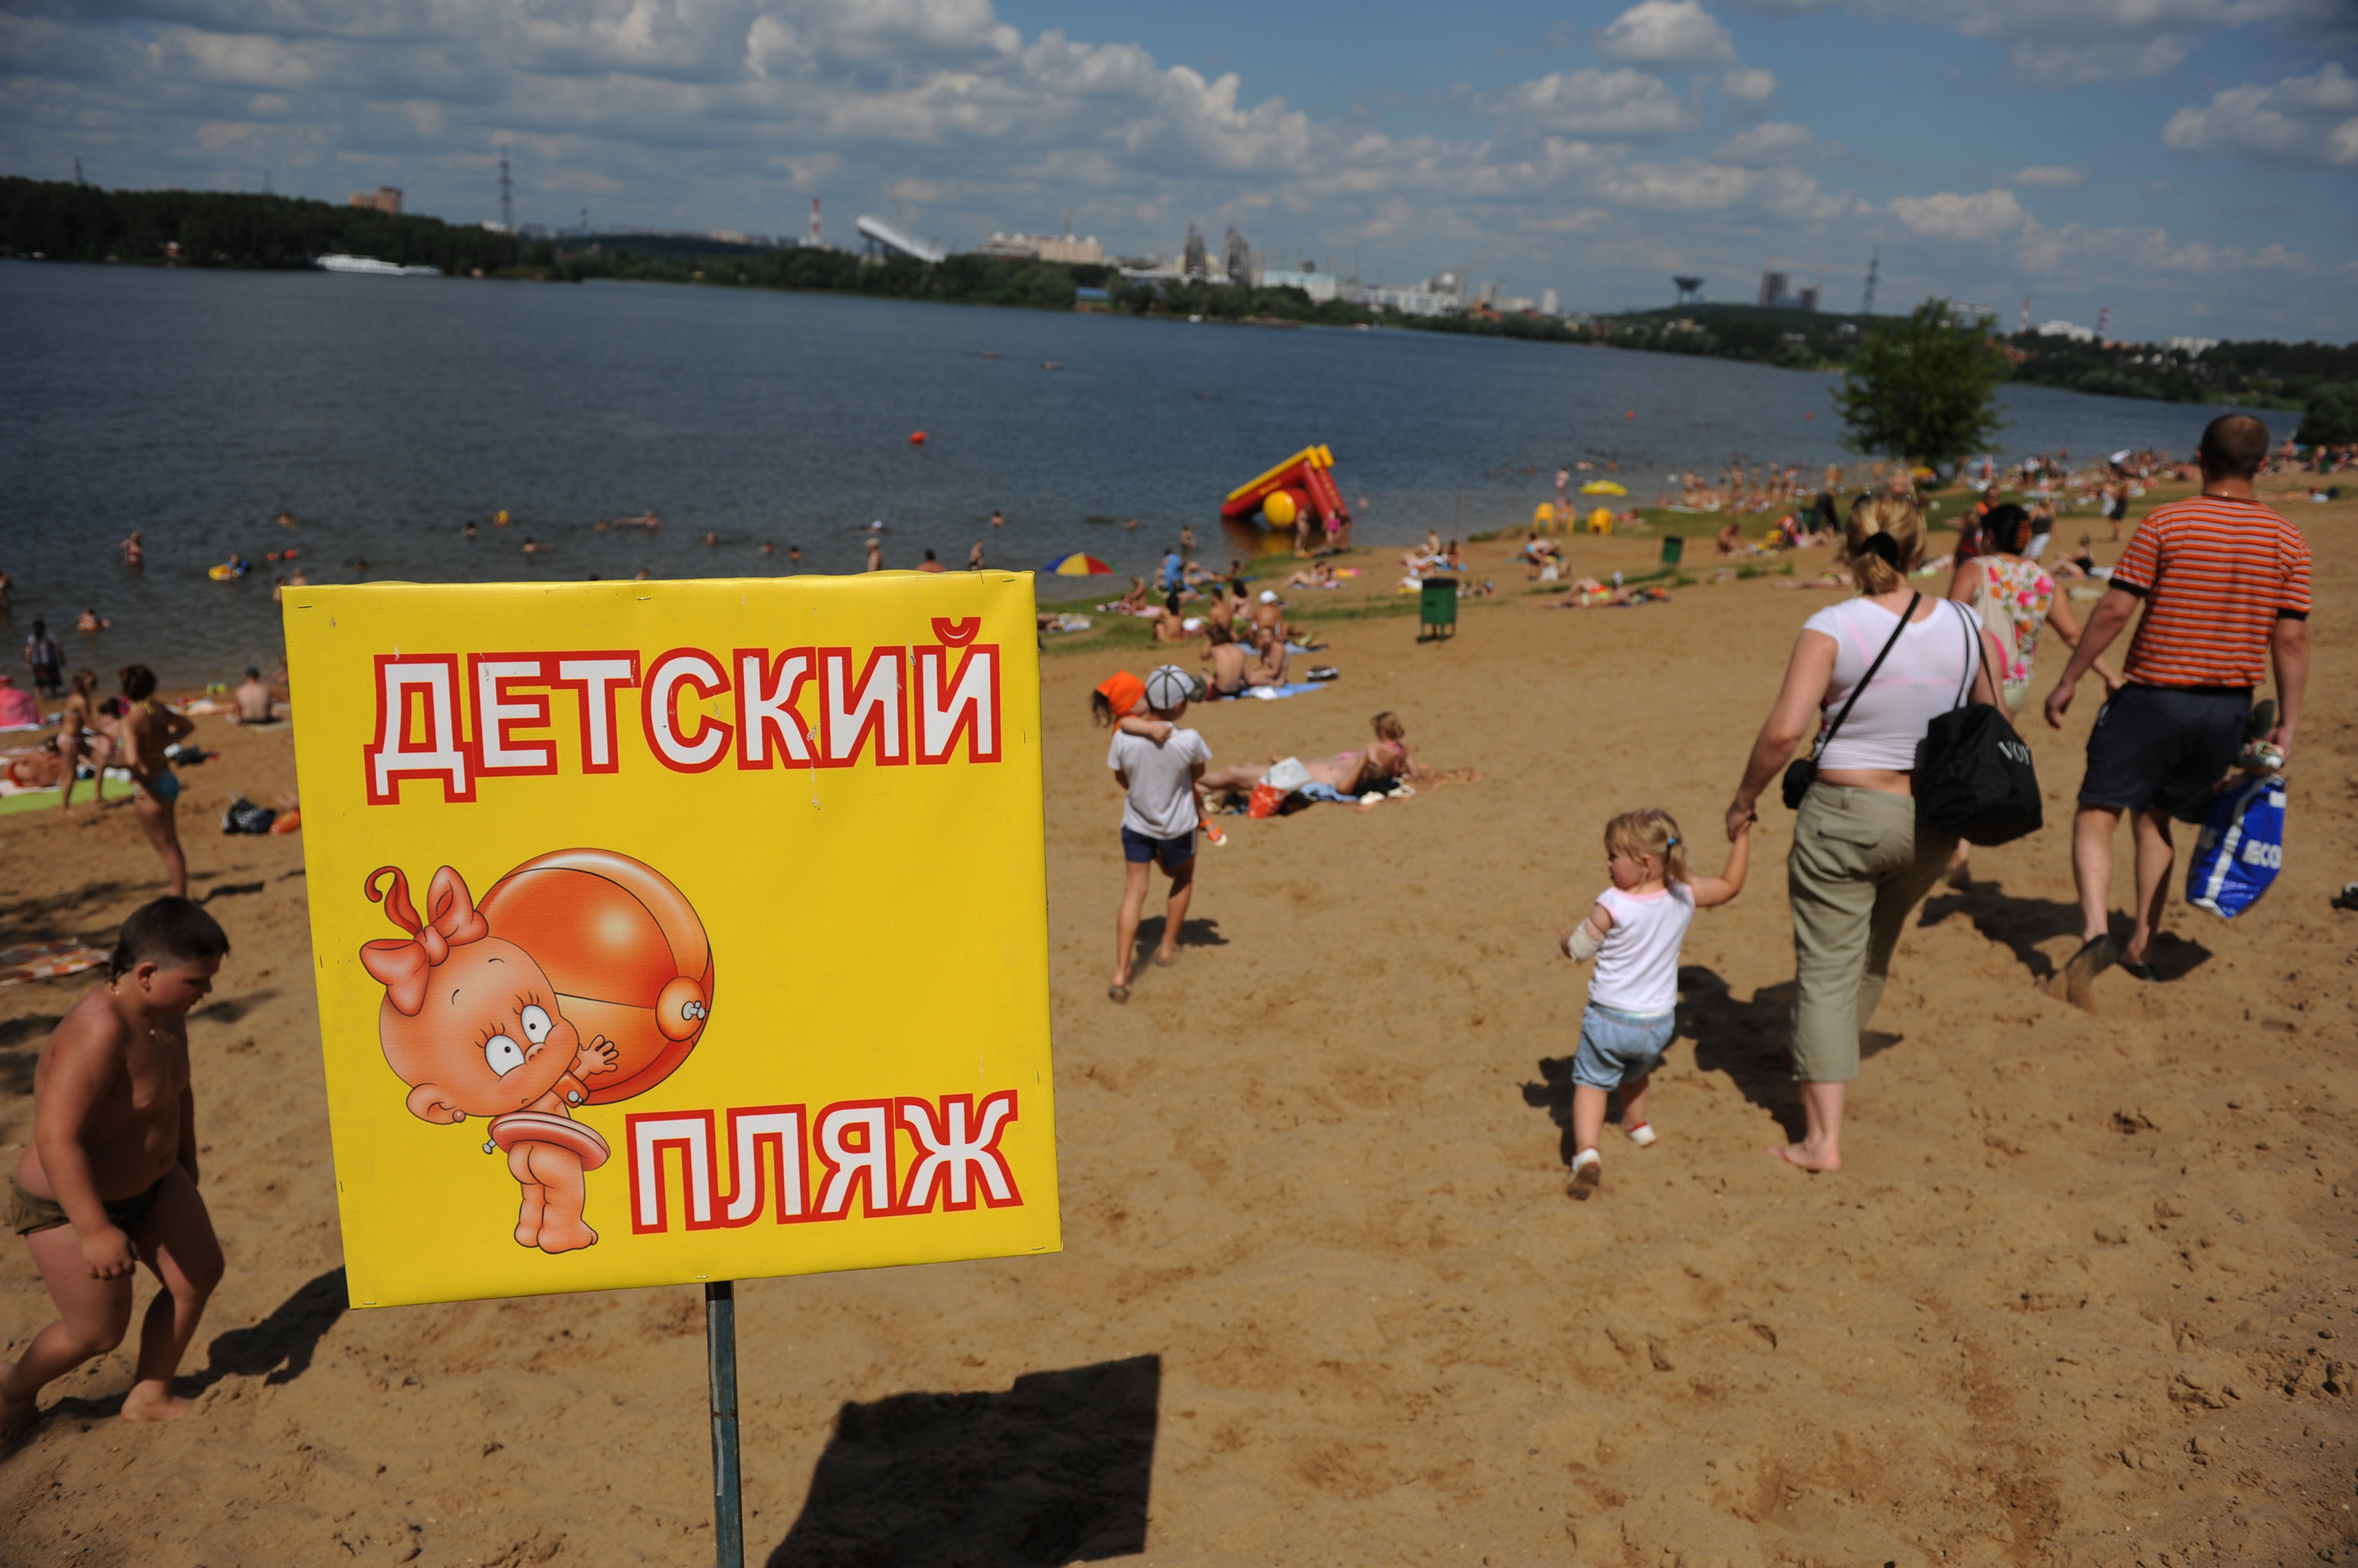 People Relaxing At Moscows Rublyovo Beach